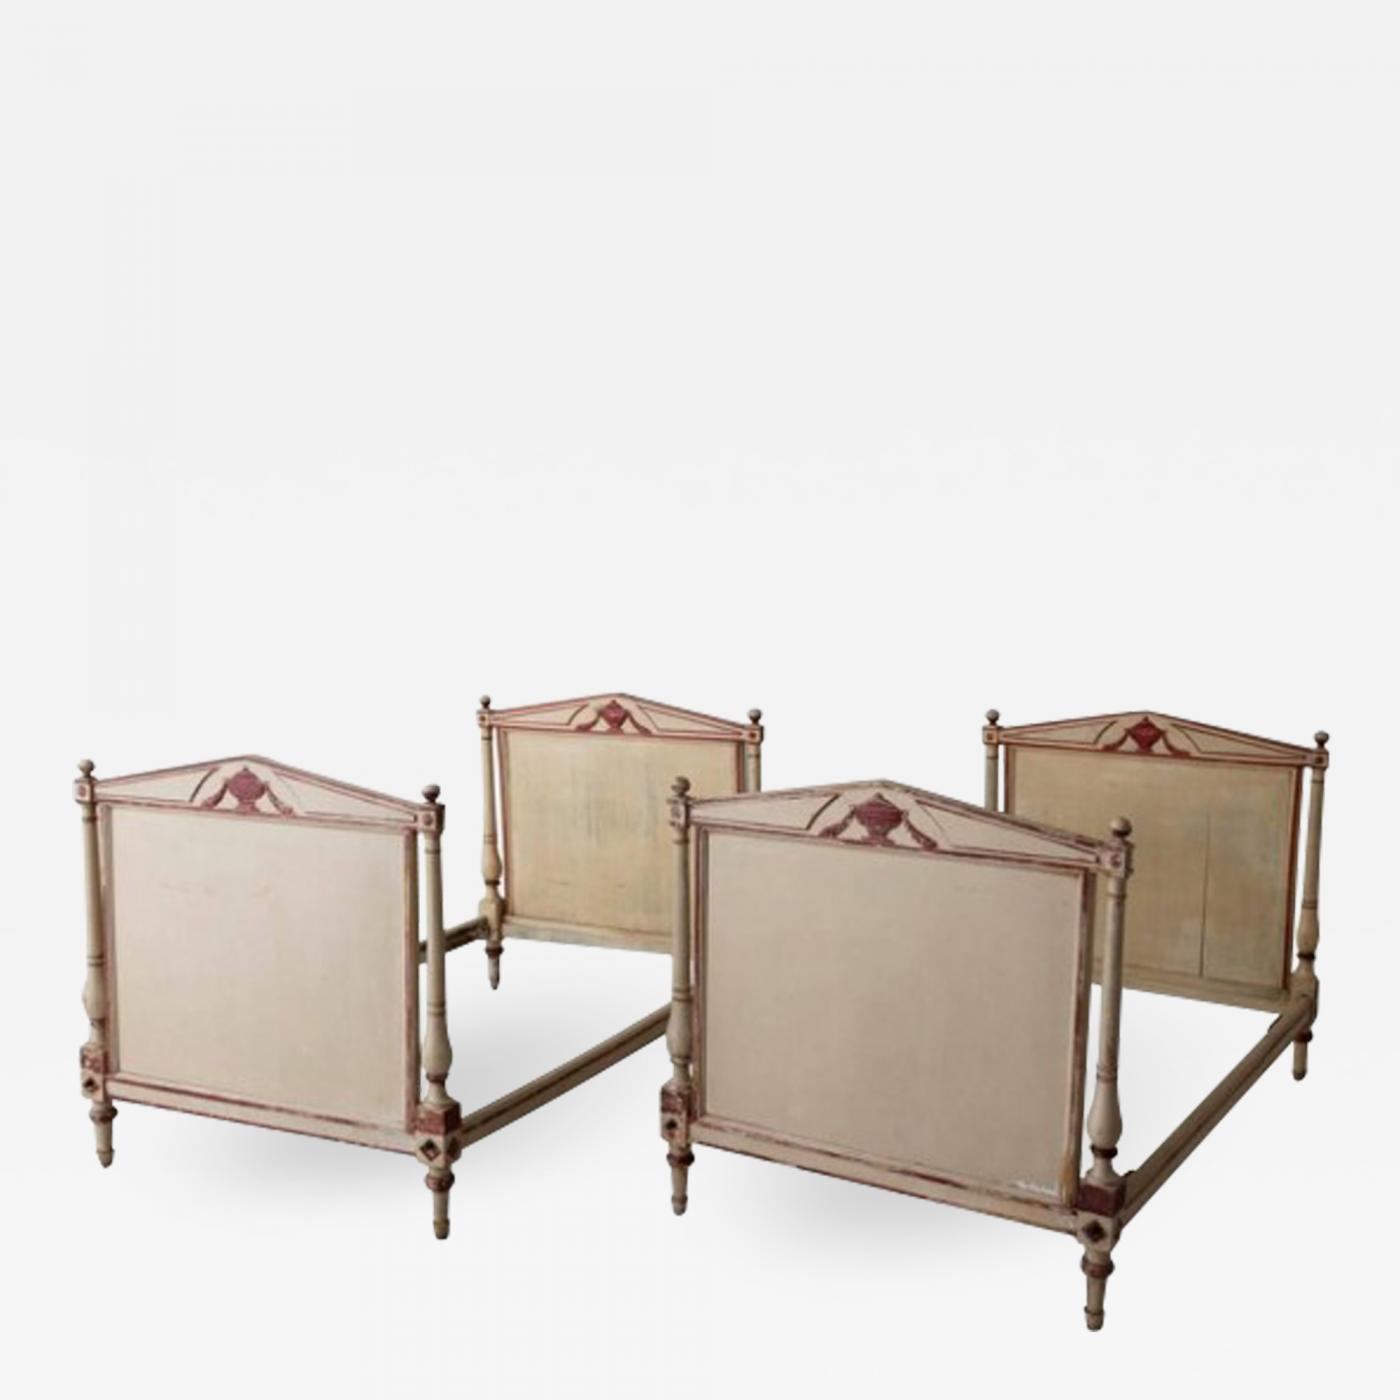 19th Century French Pair Of Directoire Style Twin Bed Frames In Original Paint